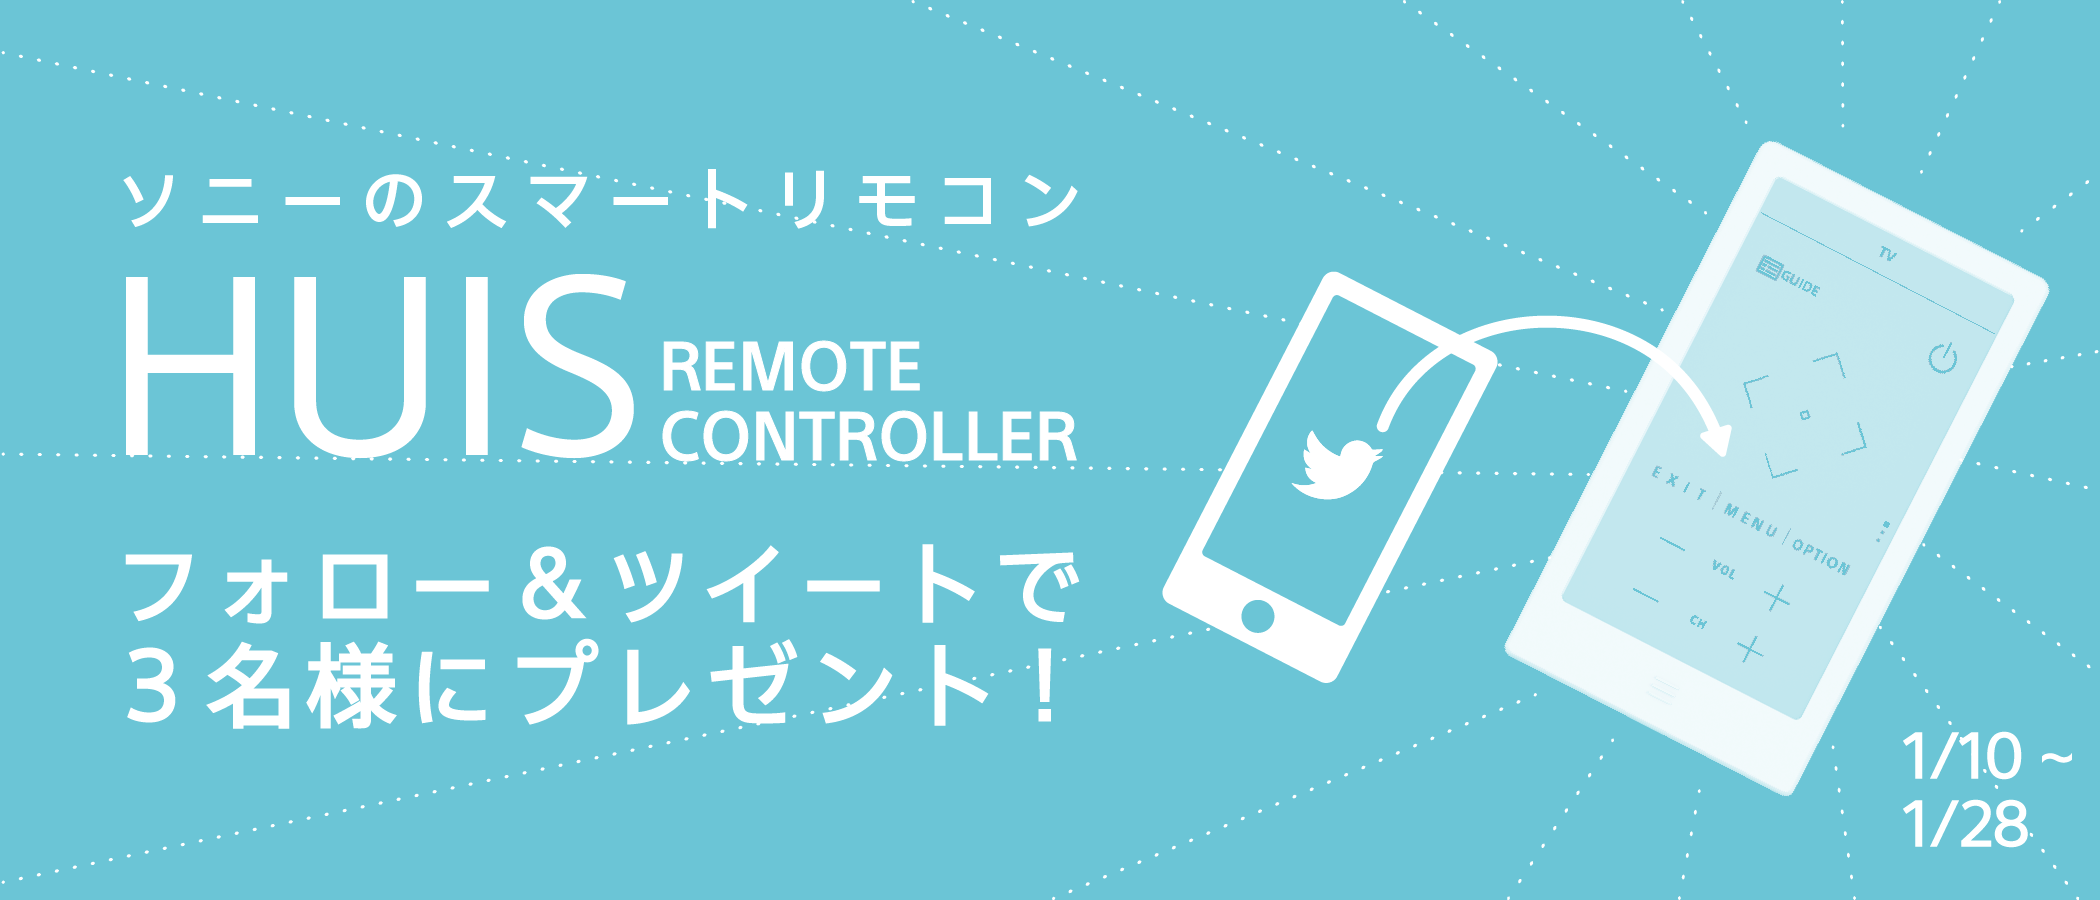 HUIS REMOTE CONTROLLER 3名様にプレゼント!